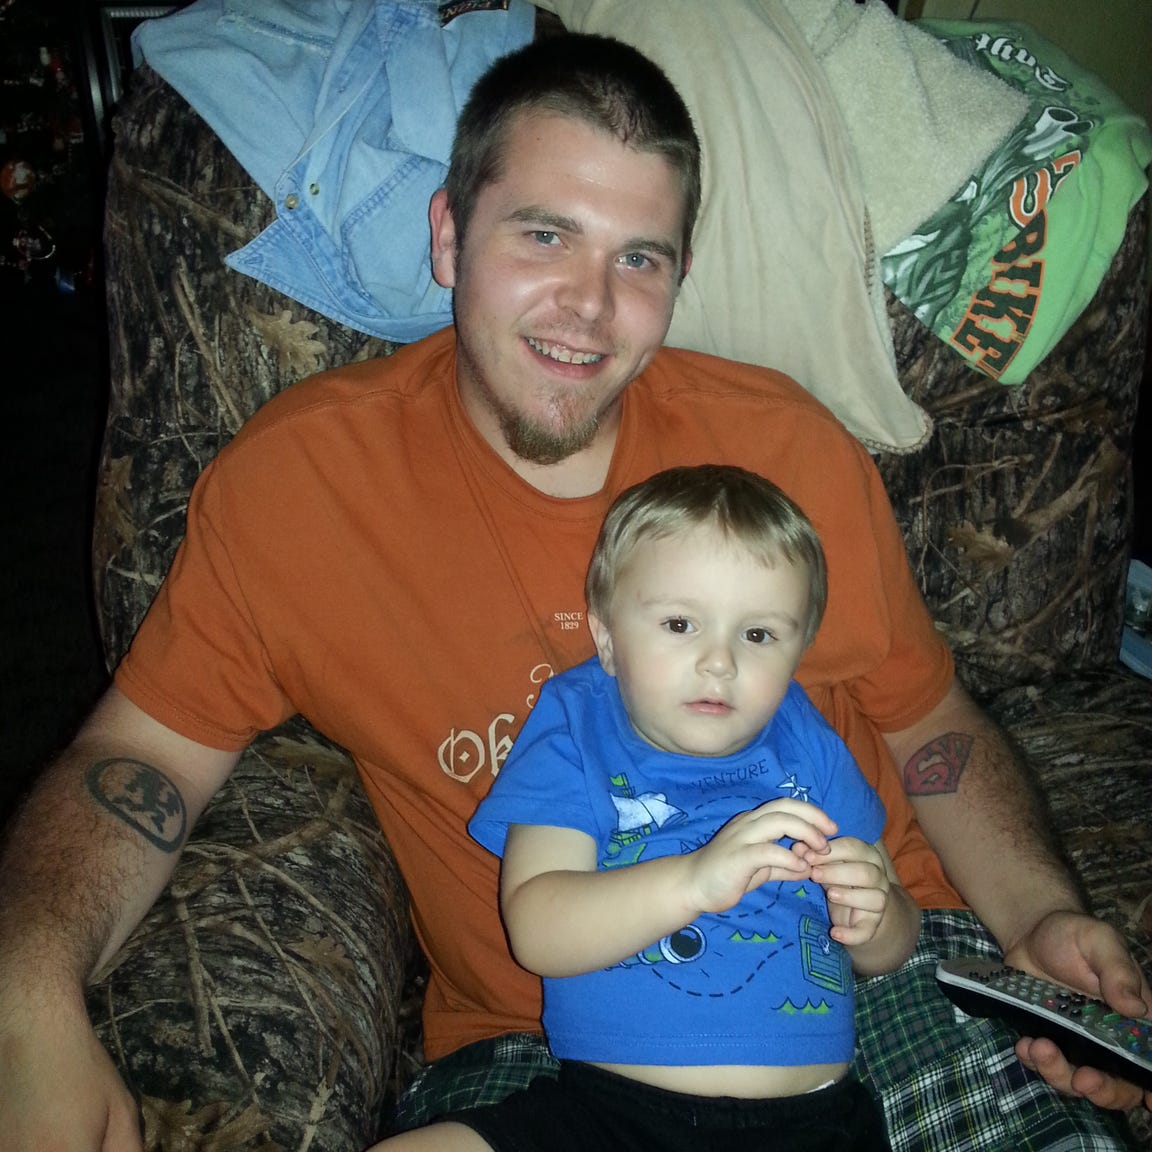 Mathew Blackburn, 27, seen here with his son Eli, is one of five patients of Dr. Darrel Rinehart to die from drug overdoses in less than a year. Blackburn died on March 5, 2015, two days after he got a new, stronger prescription from Rinehart.